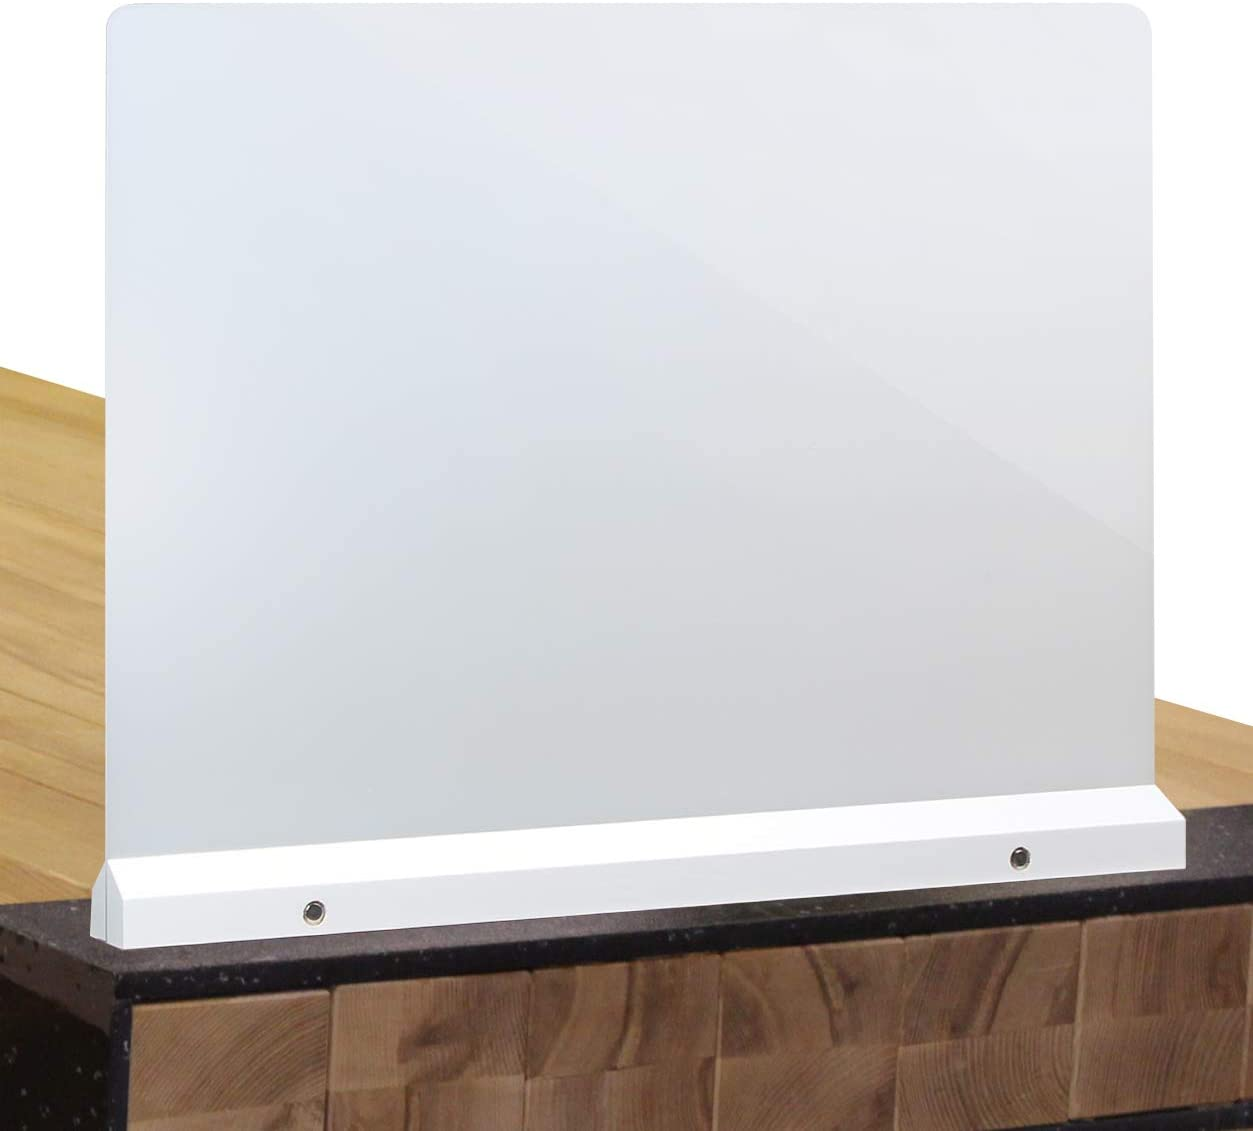 J JACKCUBE DESIGN Acrylic Desk Divider, Office Partition Board, Privacy Panel, Desktop Accessories for Classroom Cubicle Table Clear Boards 23.03 x 17.91 inches -MK529A